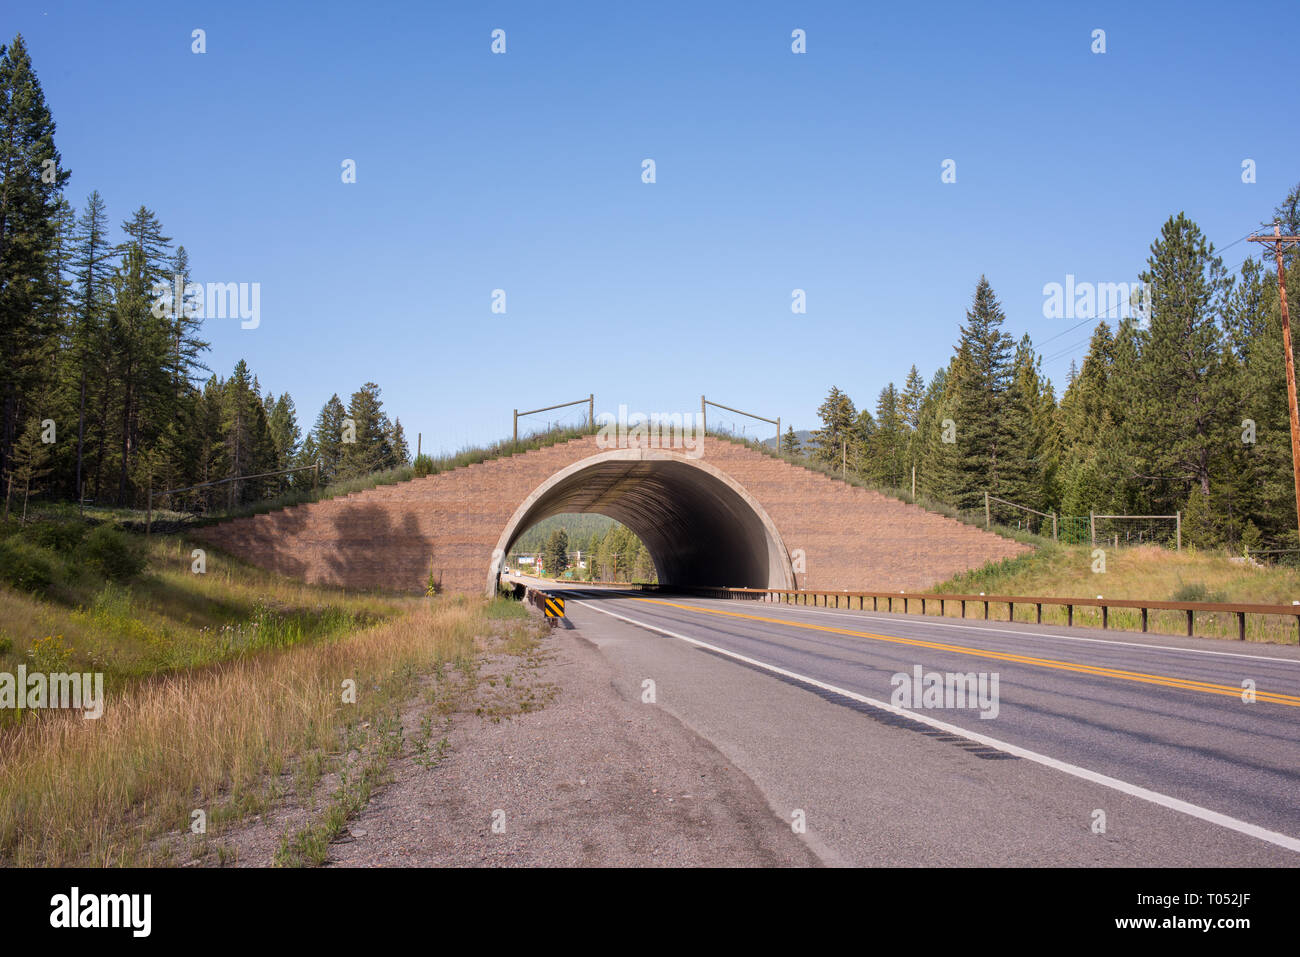 Highway 93 Stock Photos & Highway 93 Stock Images - Alamy